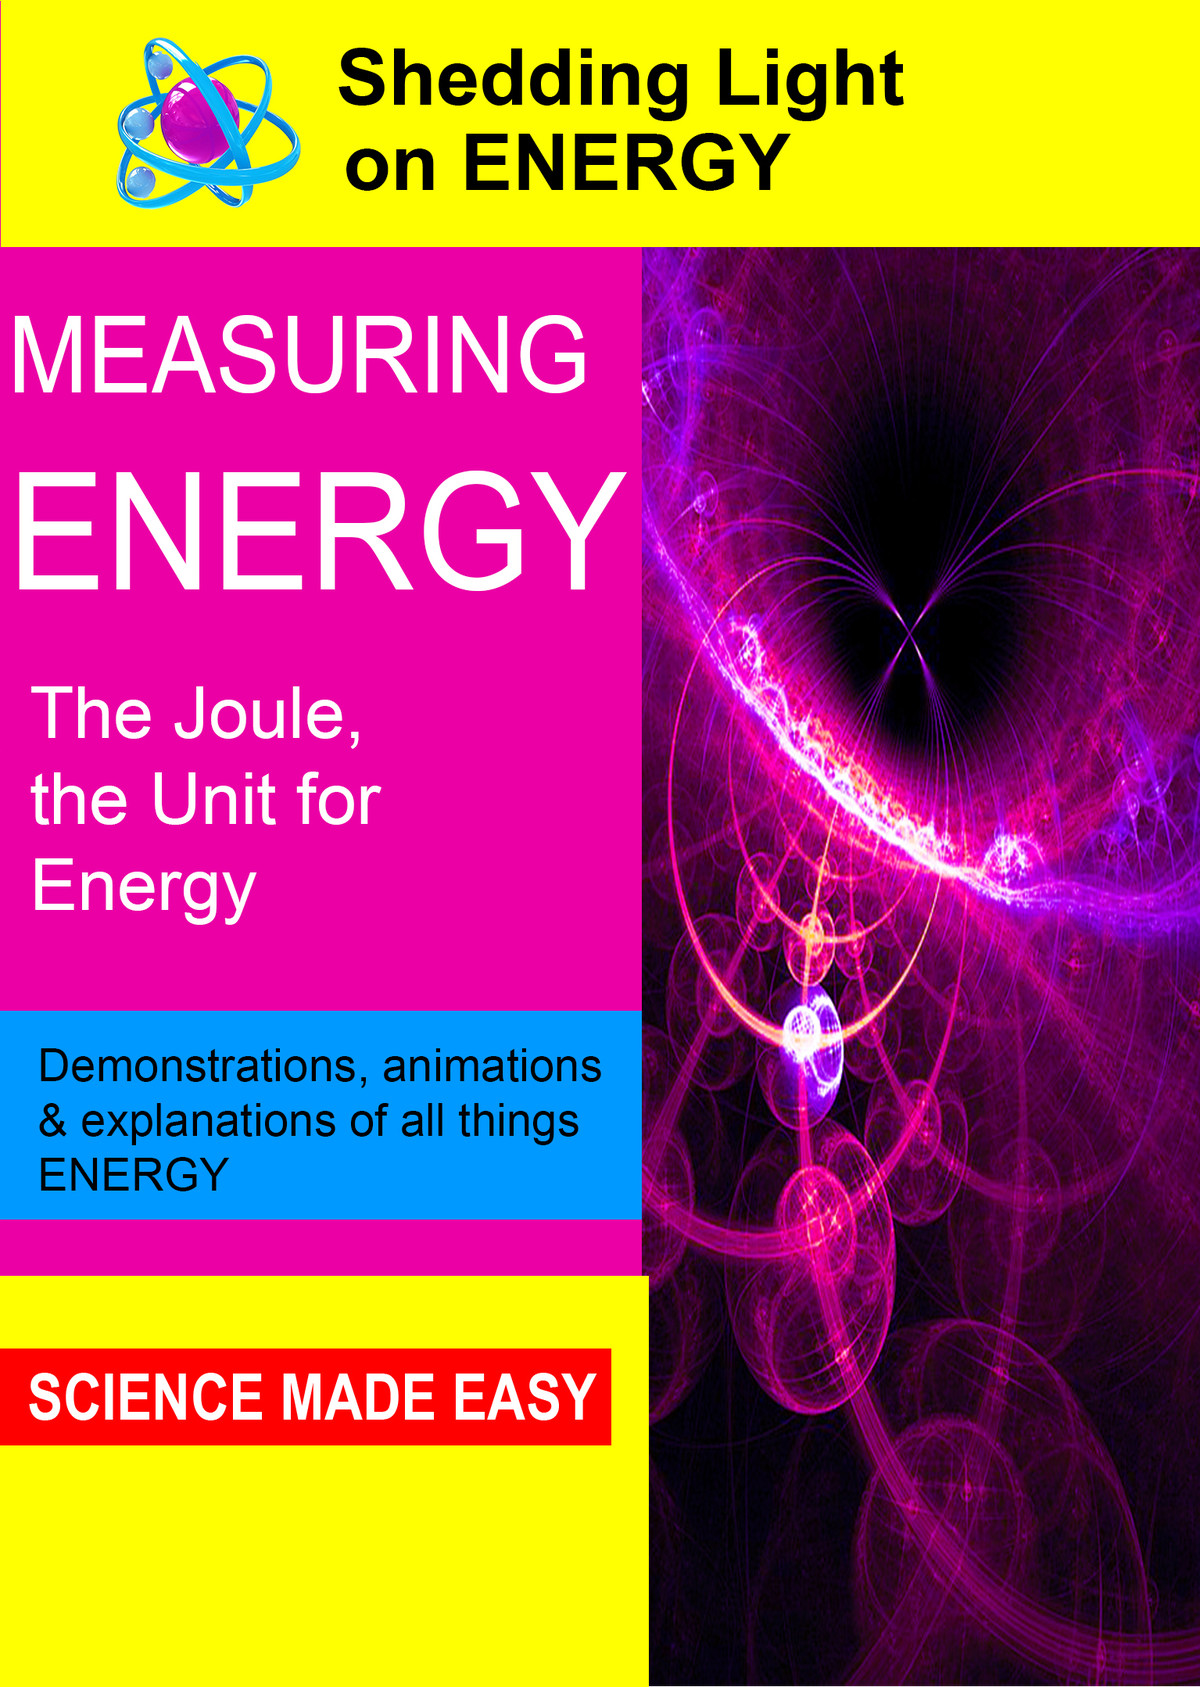 K4810 - Shedding Light on Energy Measuring Energy